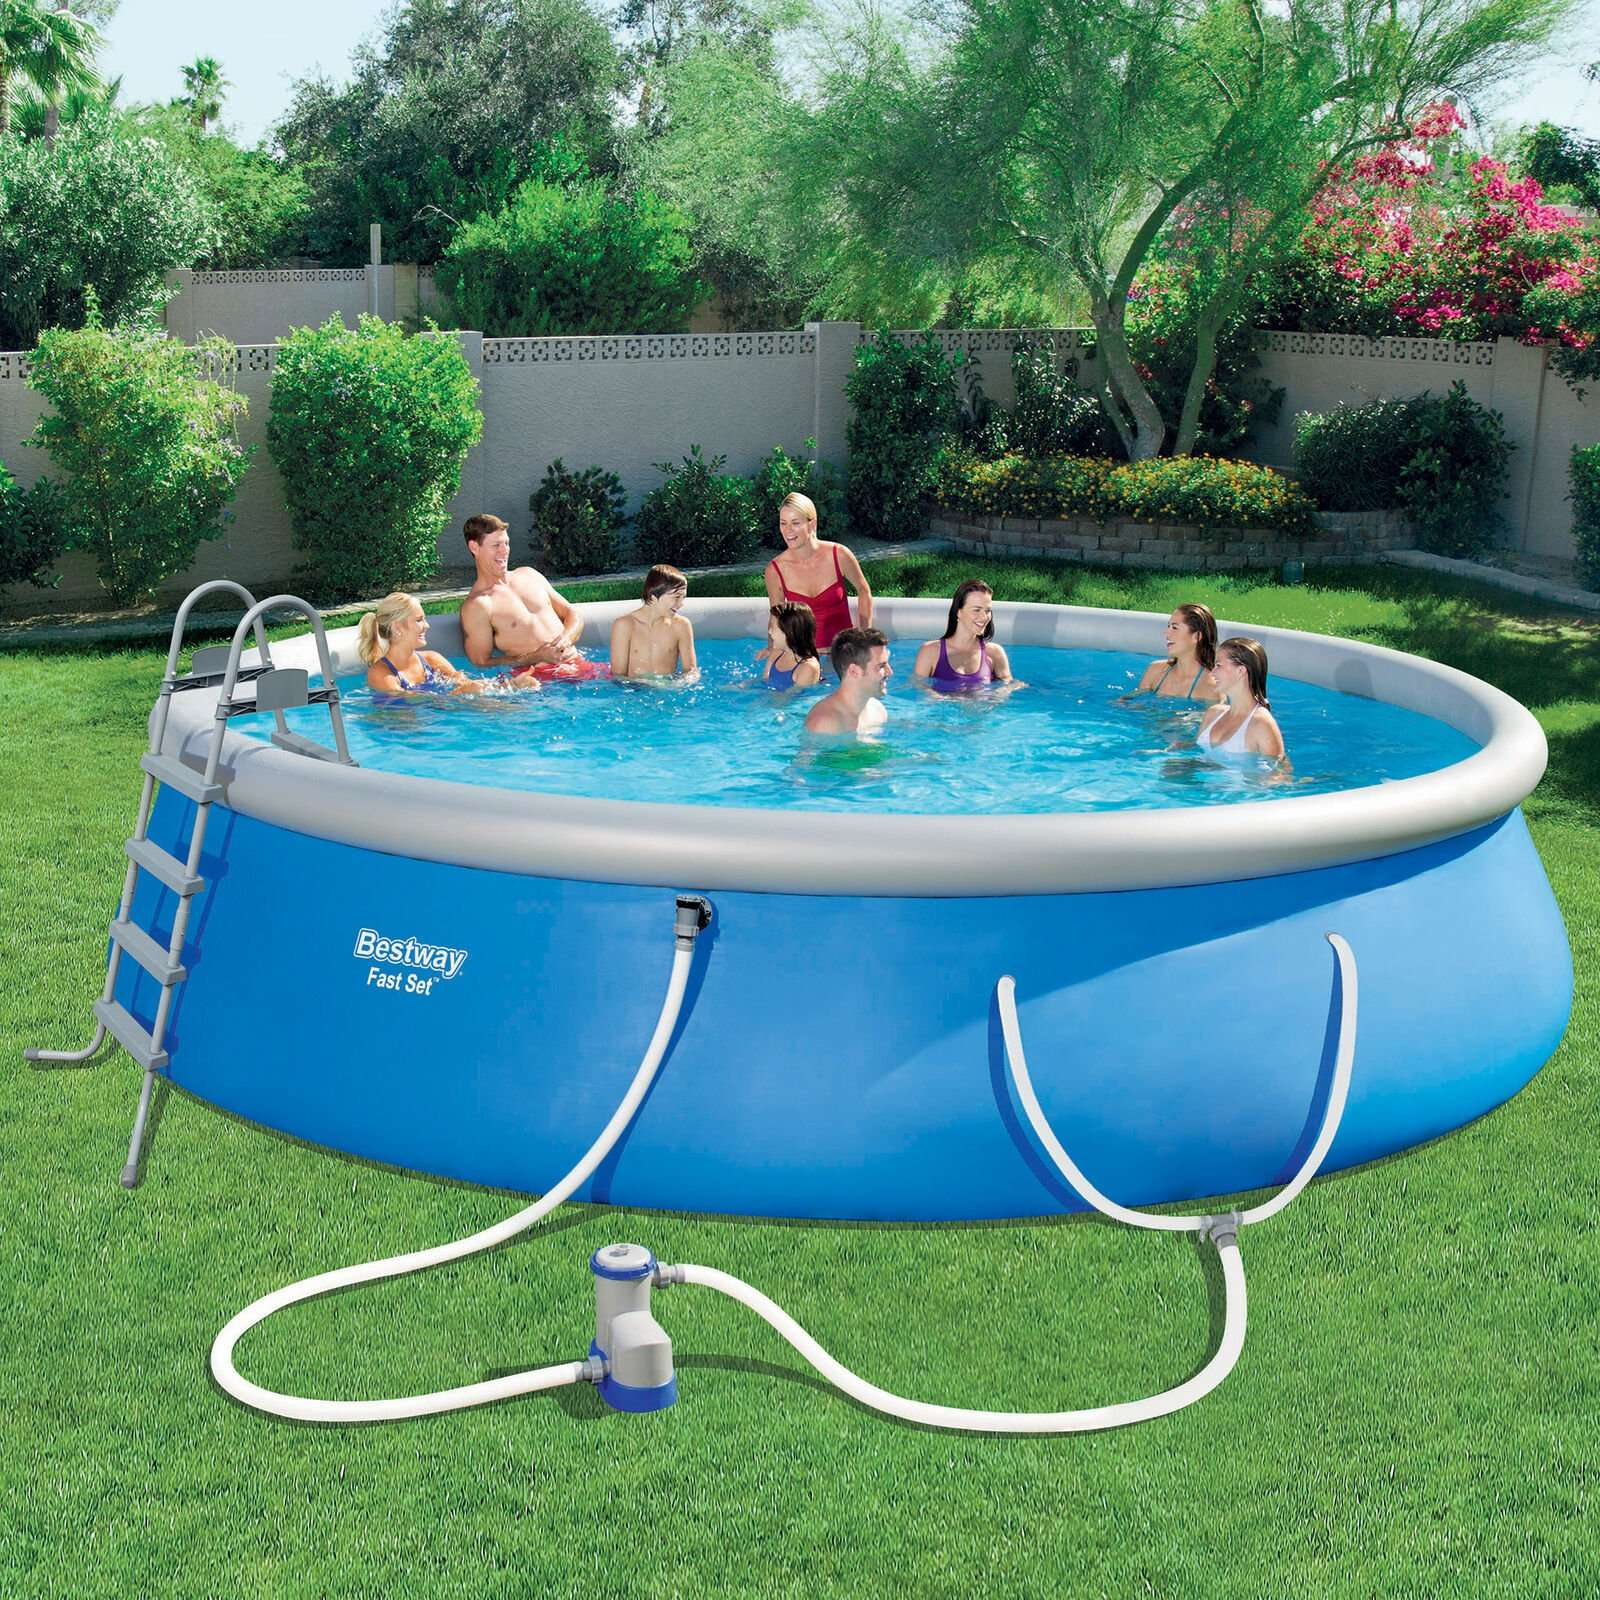 Swimming Pool Set with Pump, Ladder and Cover